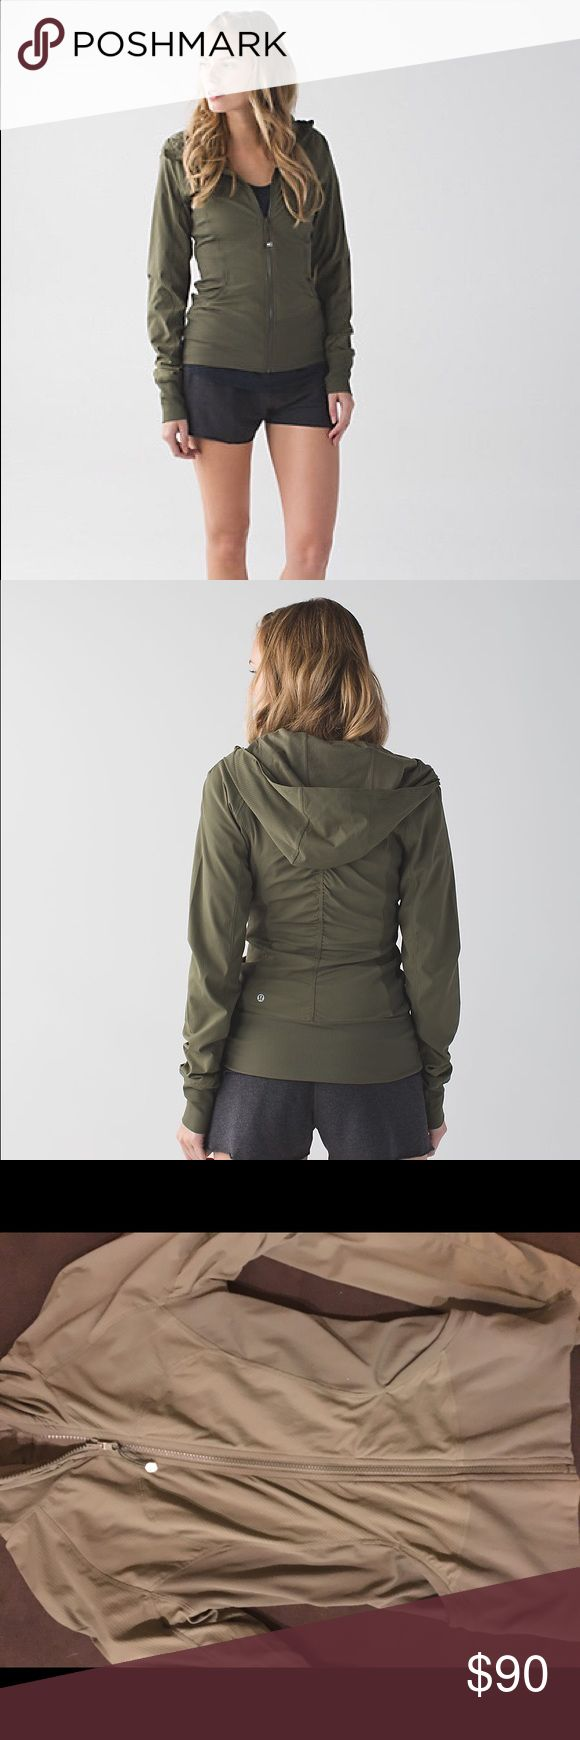 Lululemon reversible IN FLUX zip-up hoodie Water resistant, olive green, new without tags lululemon athletica Jackets & Coats